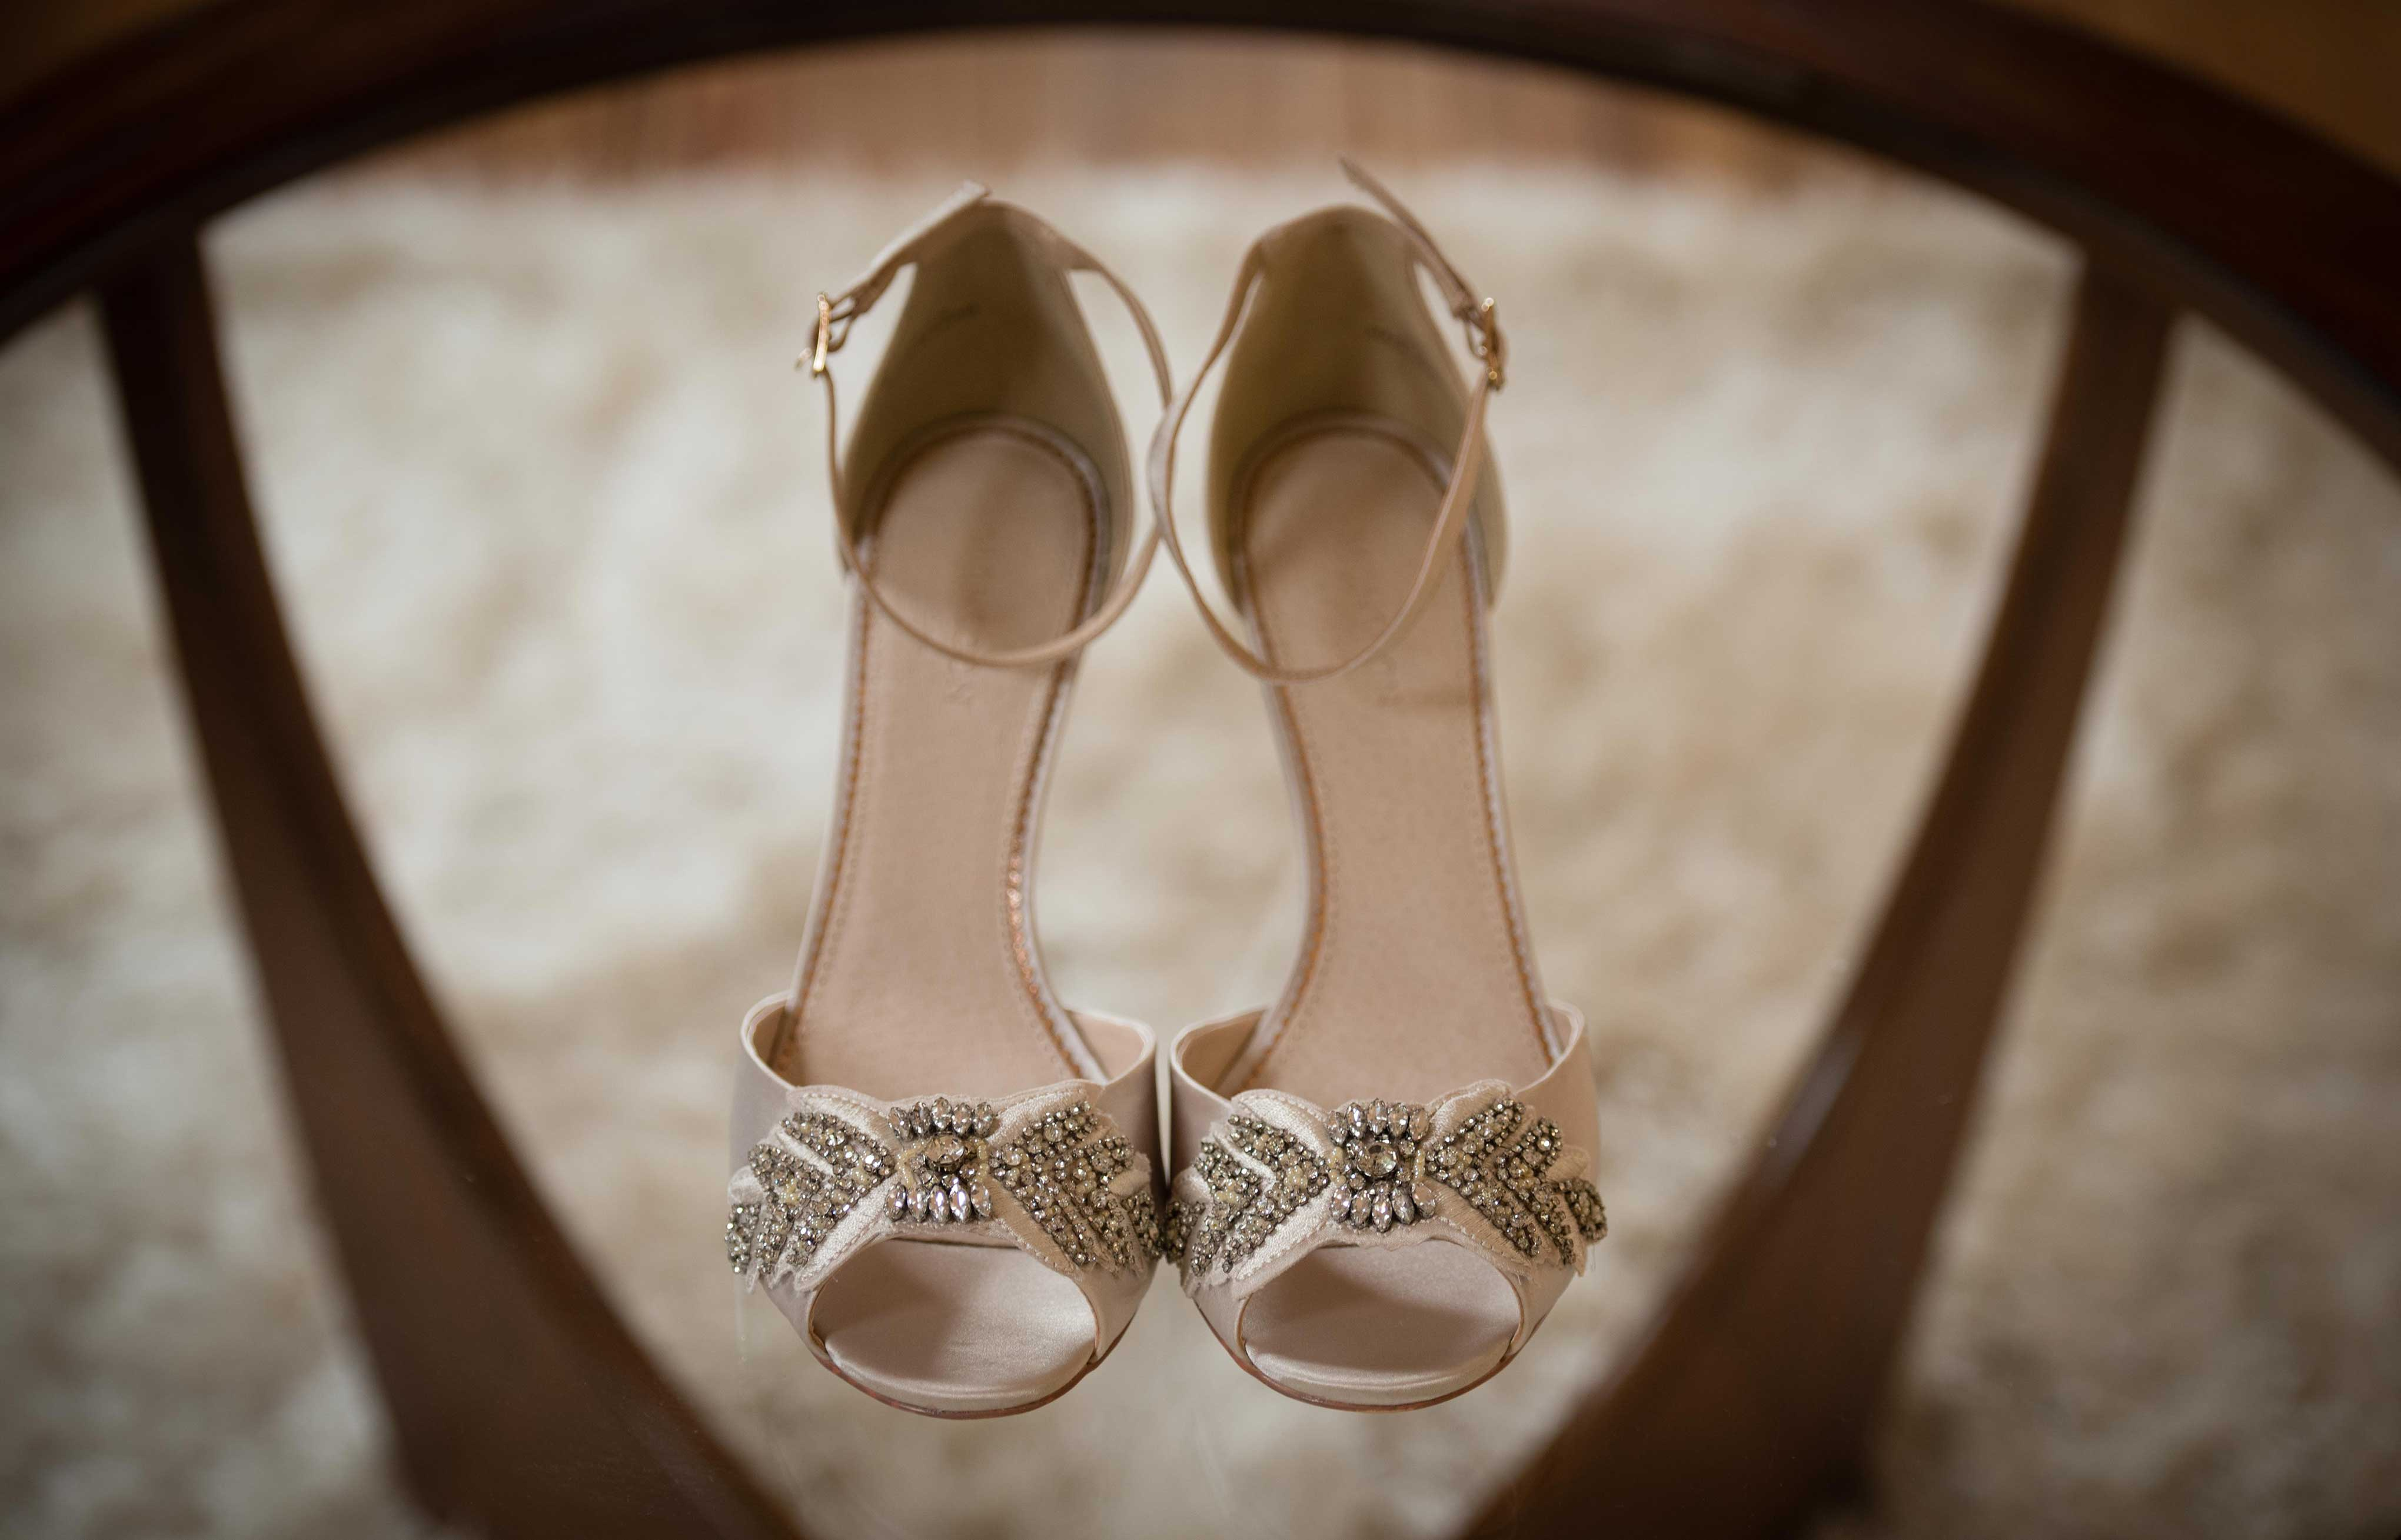 Bride's wedding shoes with bows on front